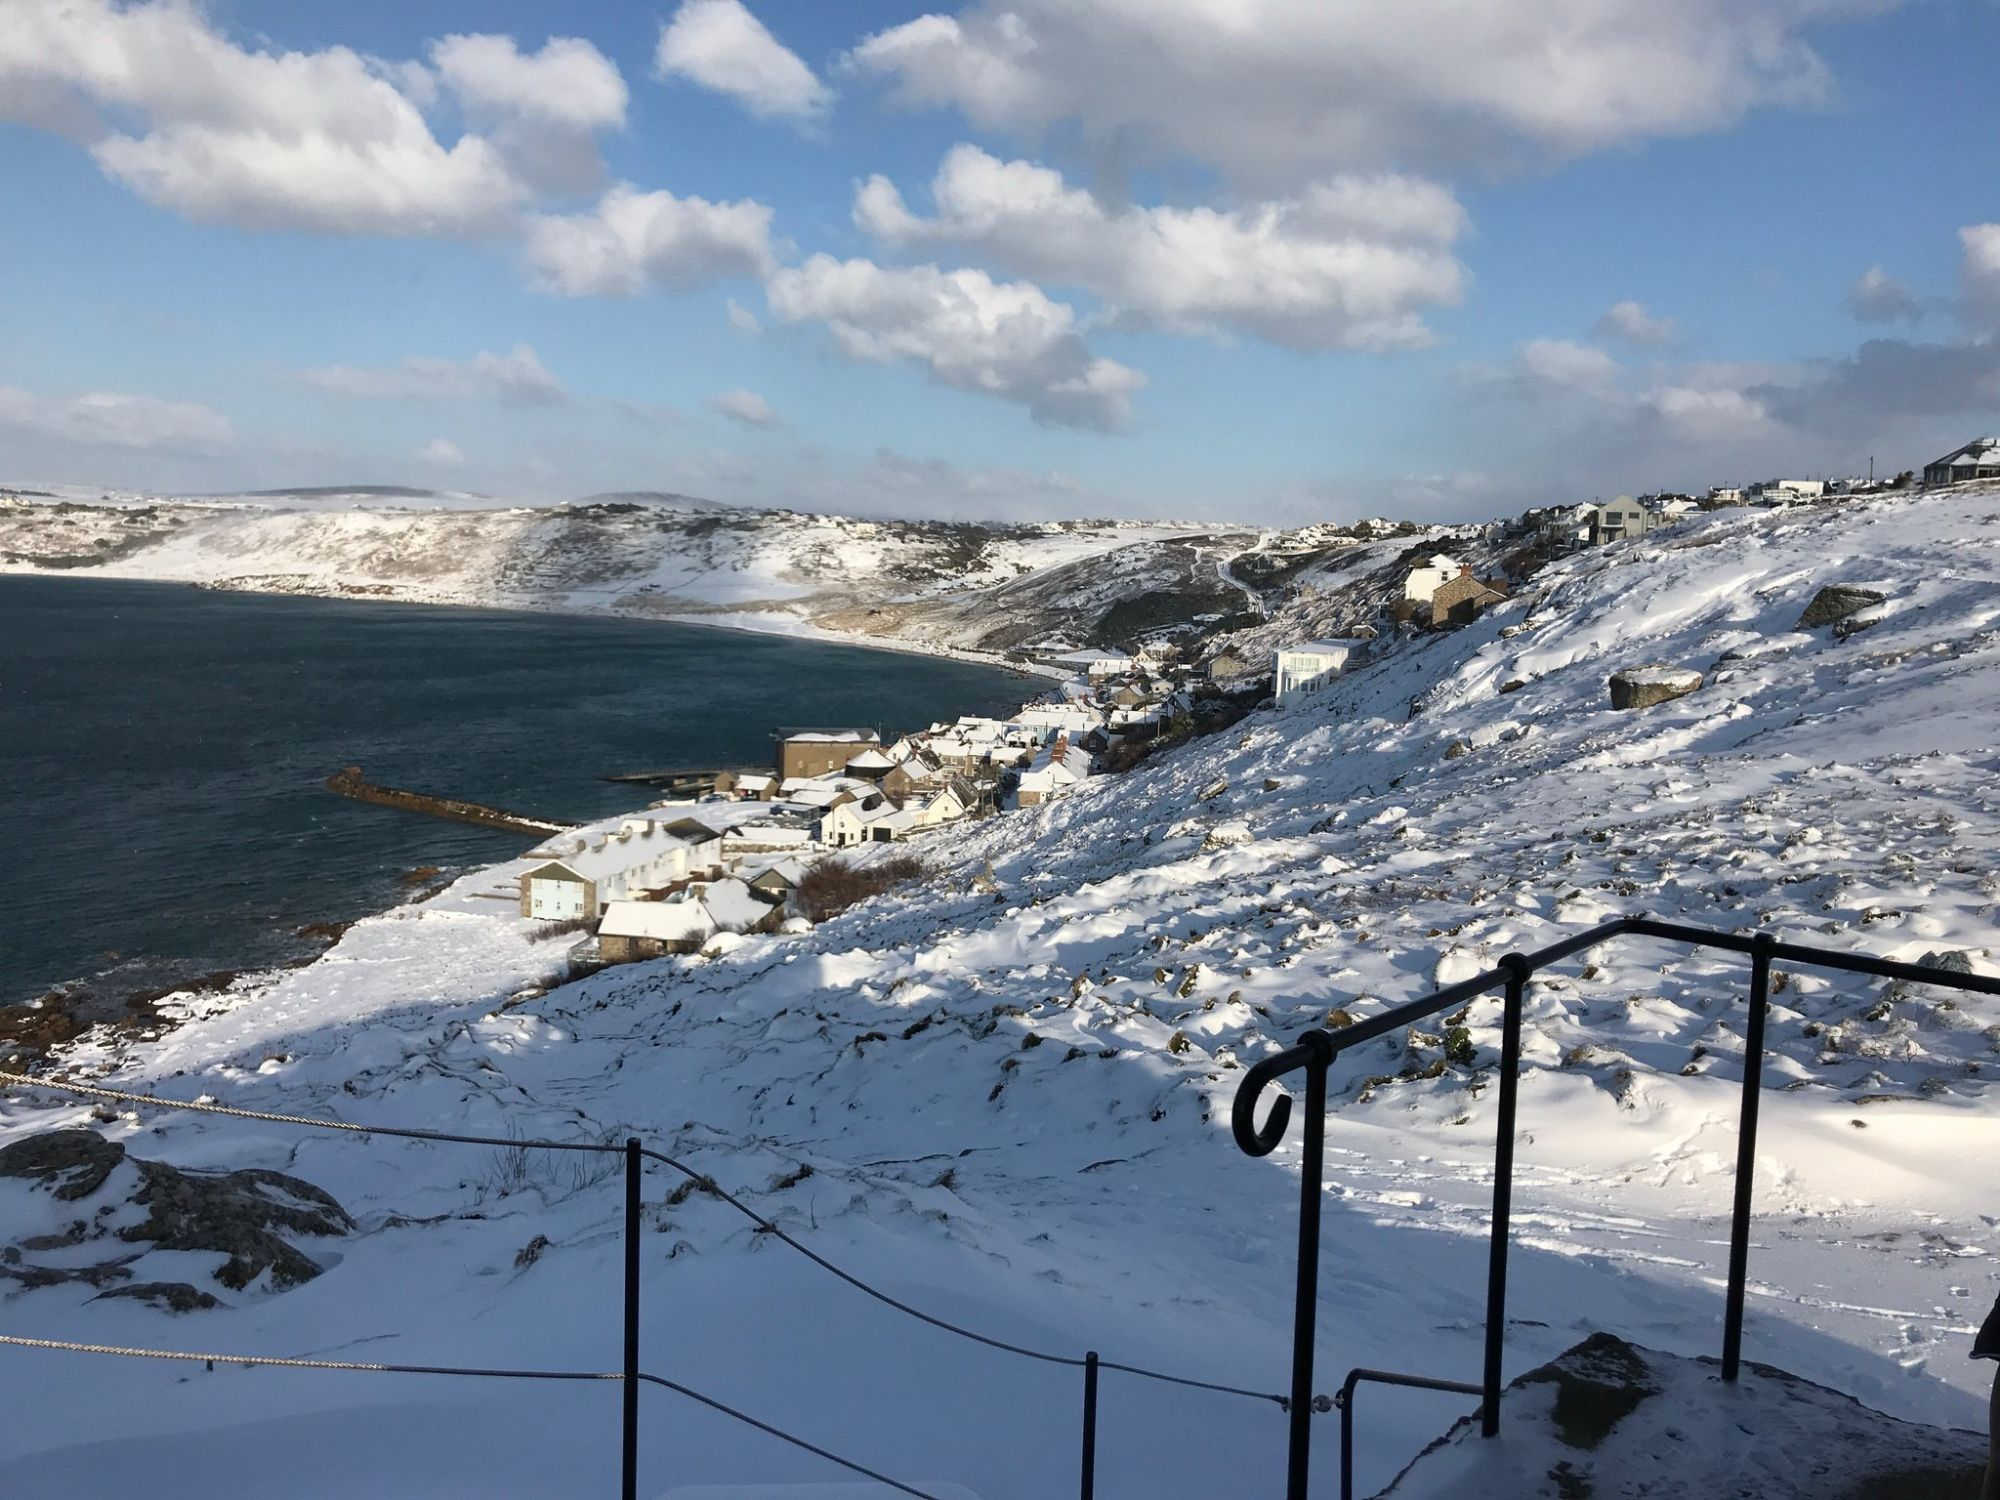 Snow in Sennen Cove